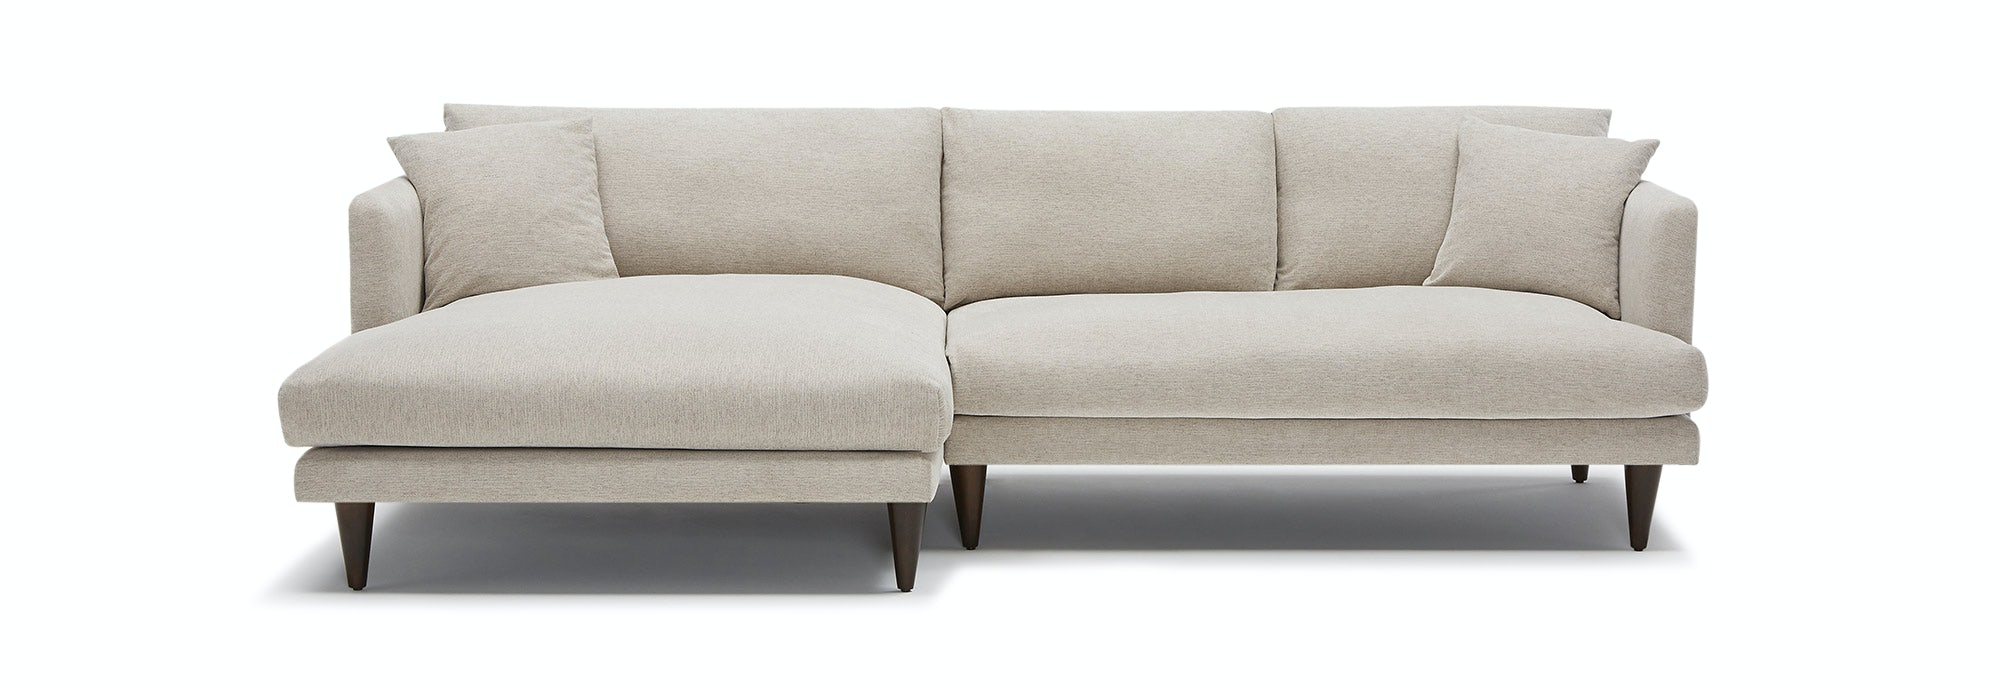 Swell Lewis Sectional Alphanode Cool Chair Designs And Ideas Alphanodeonline